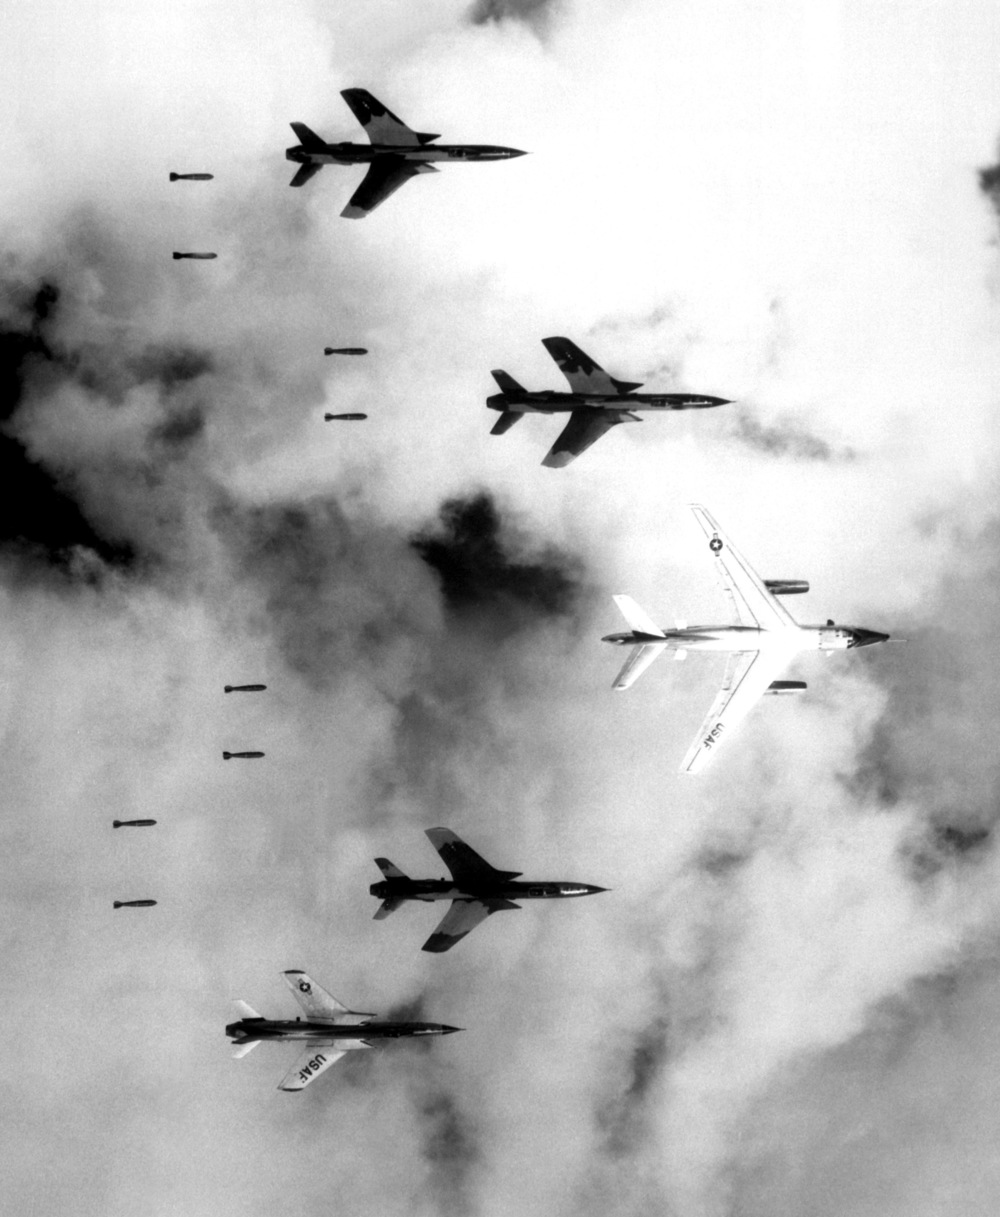 Flying under radar control with a B-66 Destroyer, Air Force F-105 Thunderchief pilots bomb a military target through low clouds over the southern panhandle of North Viet Nam. June 14, 1966. (Cecil J. Poss, Wikimedia Commons)